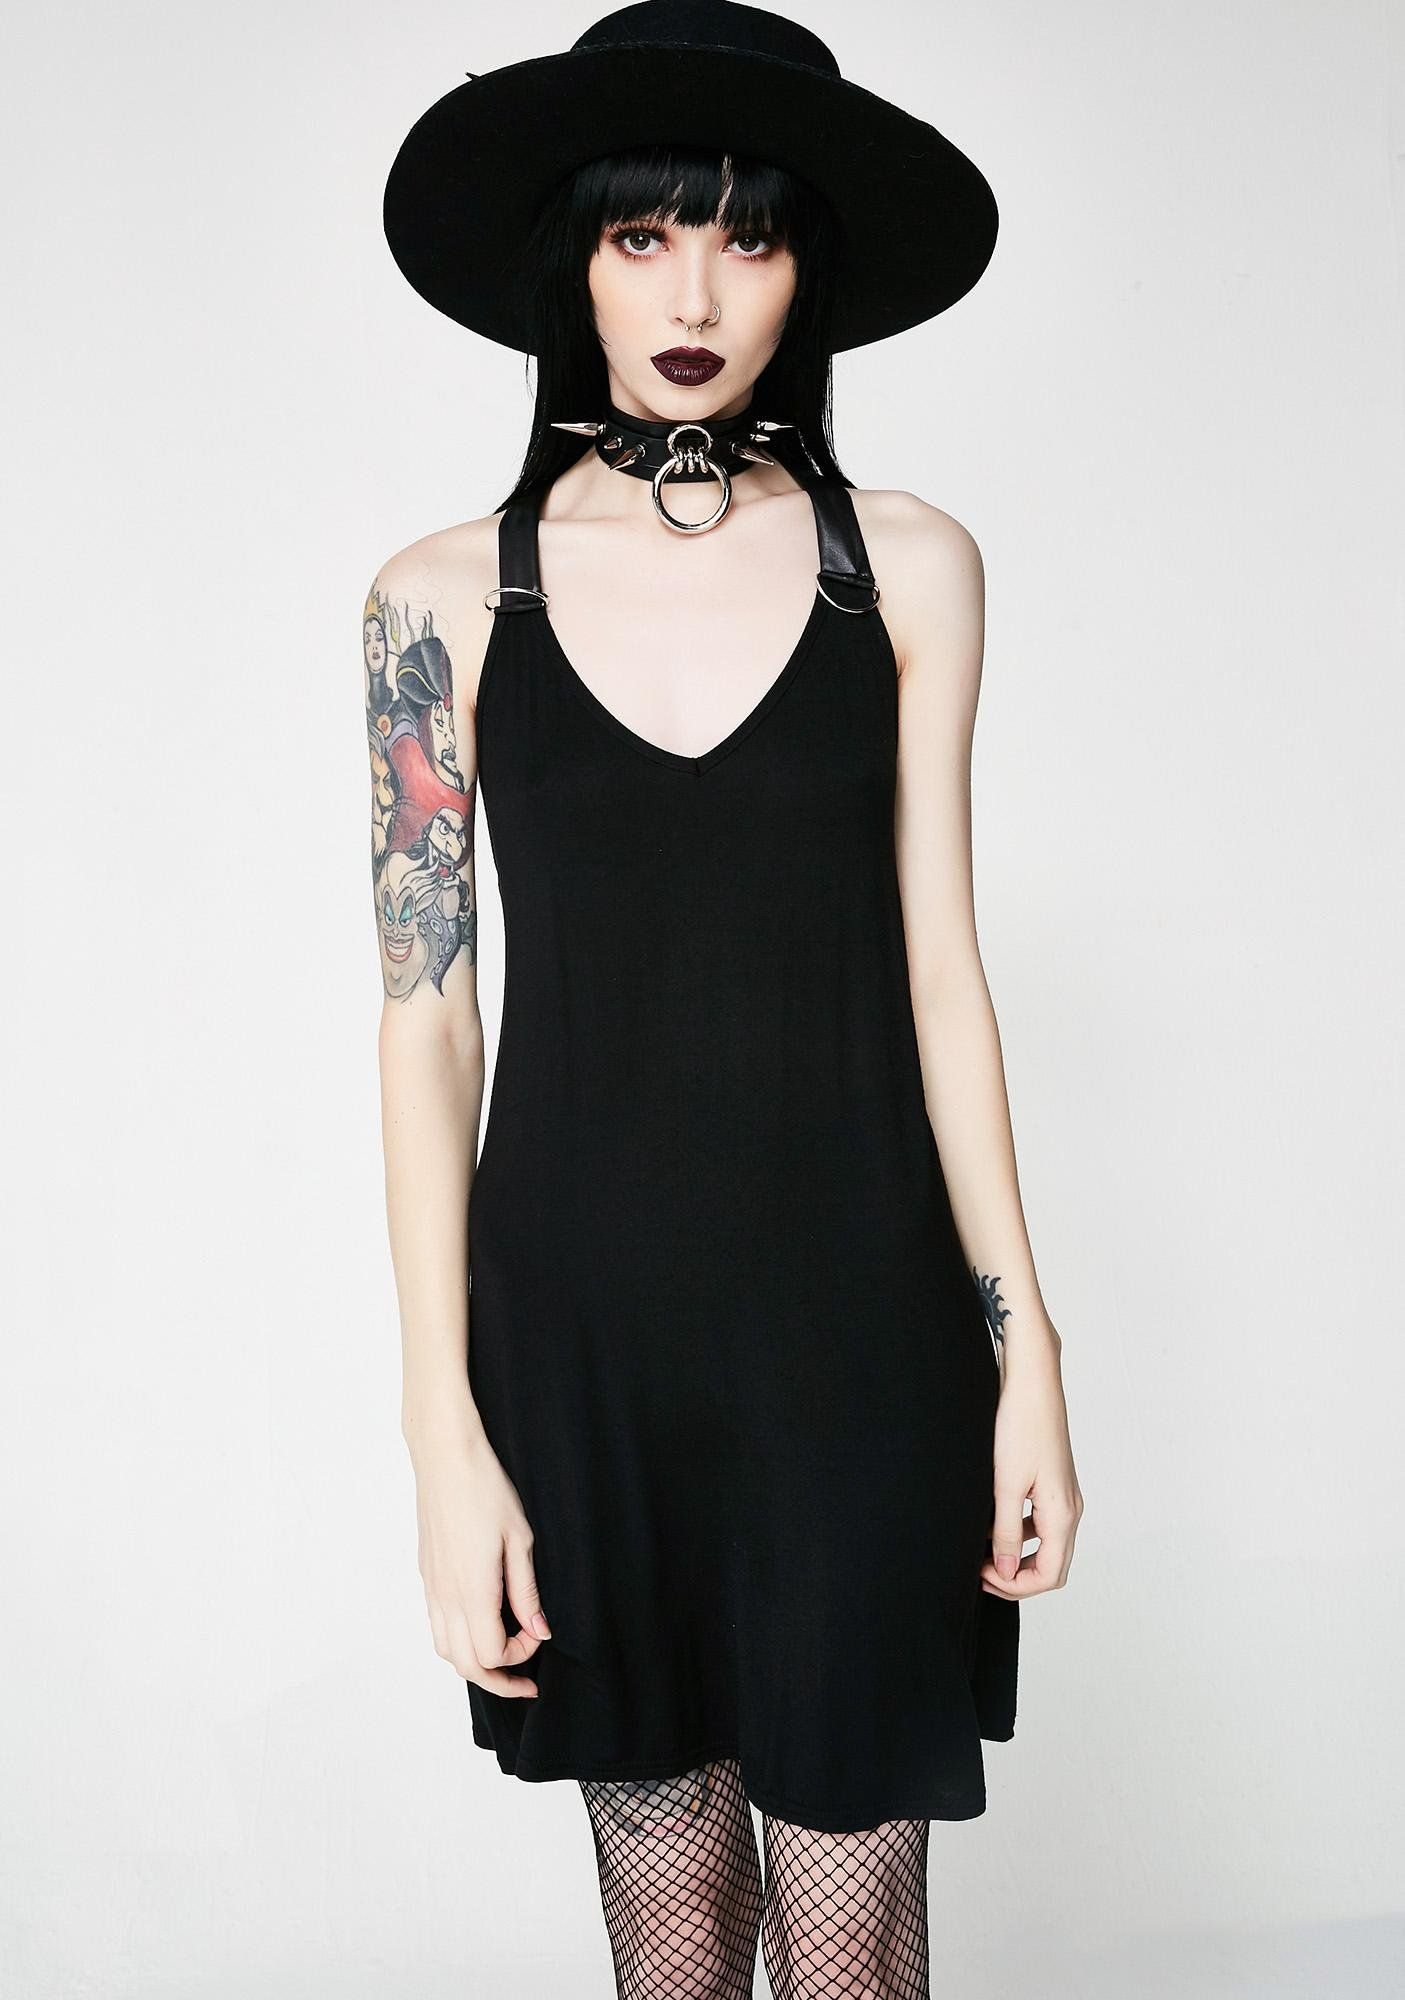 b2654d1d41 Disturbia Harness Dress  cuz you got all the power. This silky slip dress  gives ya room to crush it with a vegan leather strappy back detail and a ...